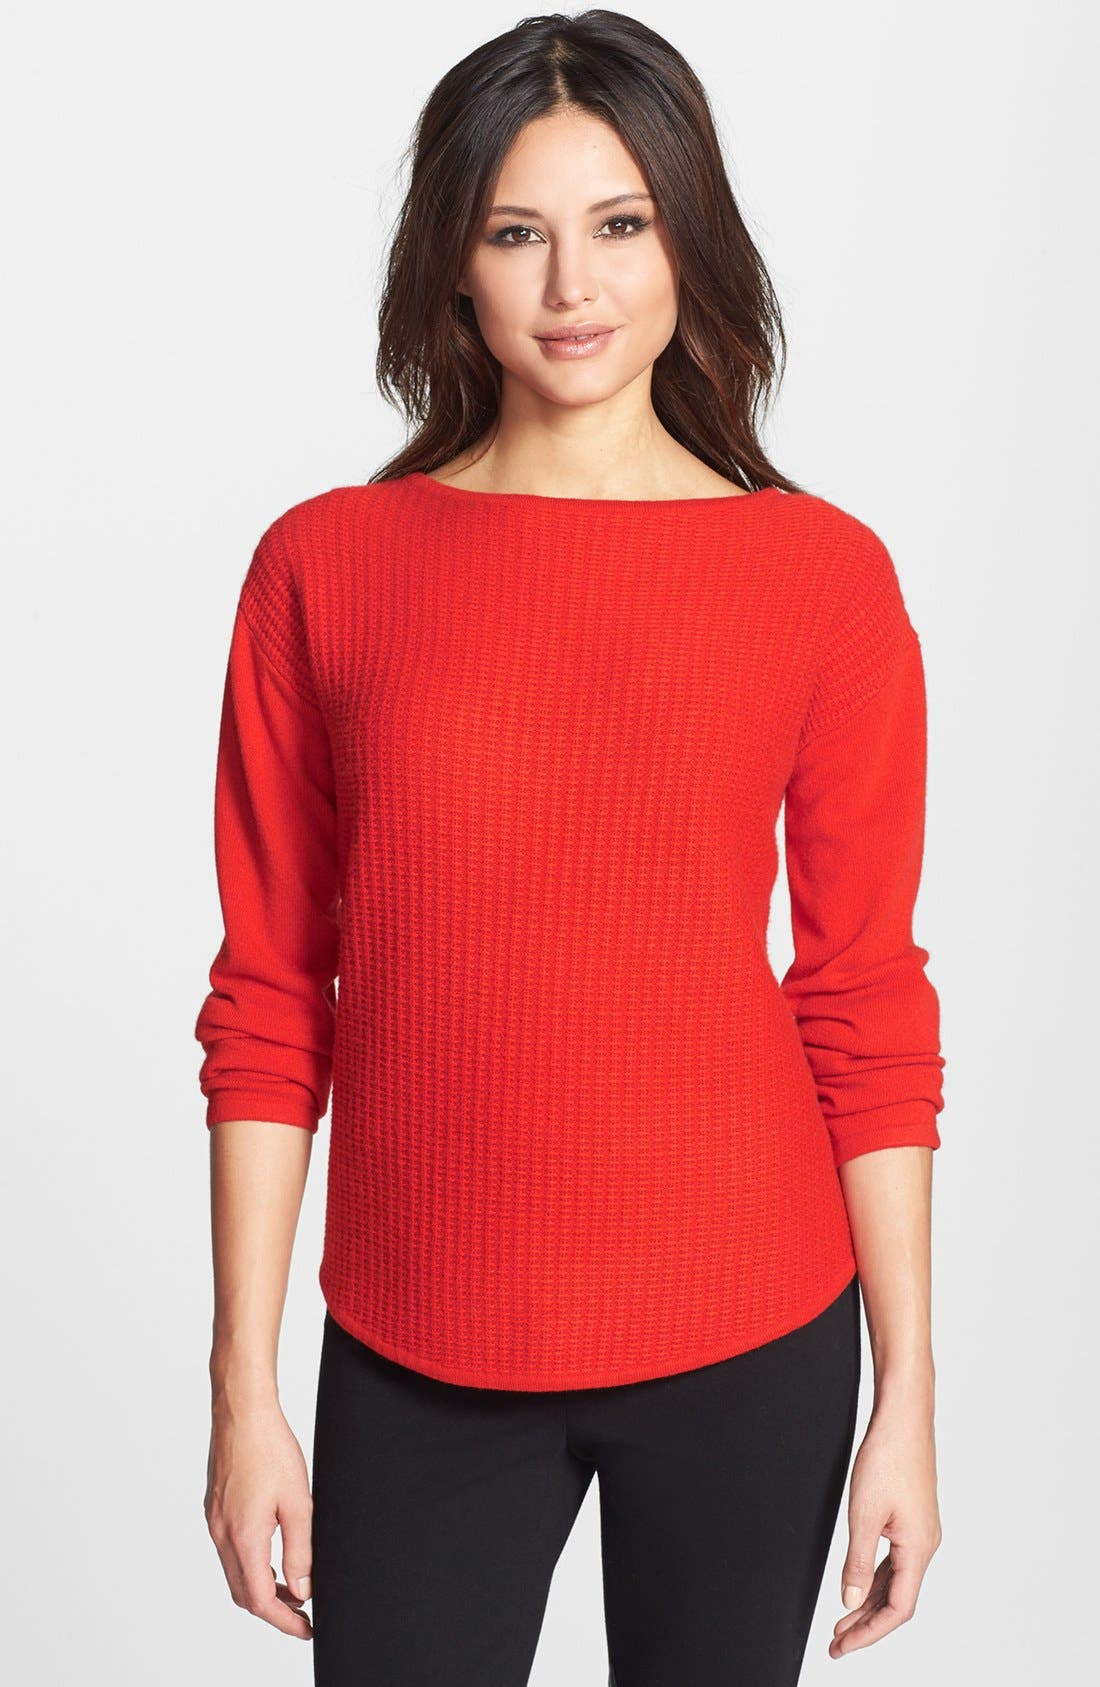 Alternate Image 1 Selected - Nordstrom Collection Textured Stitch Cashmere Boatneck Sweater